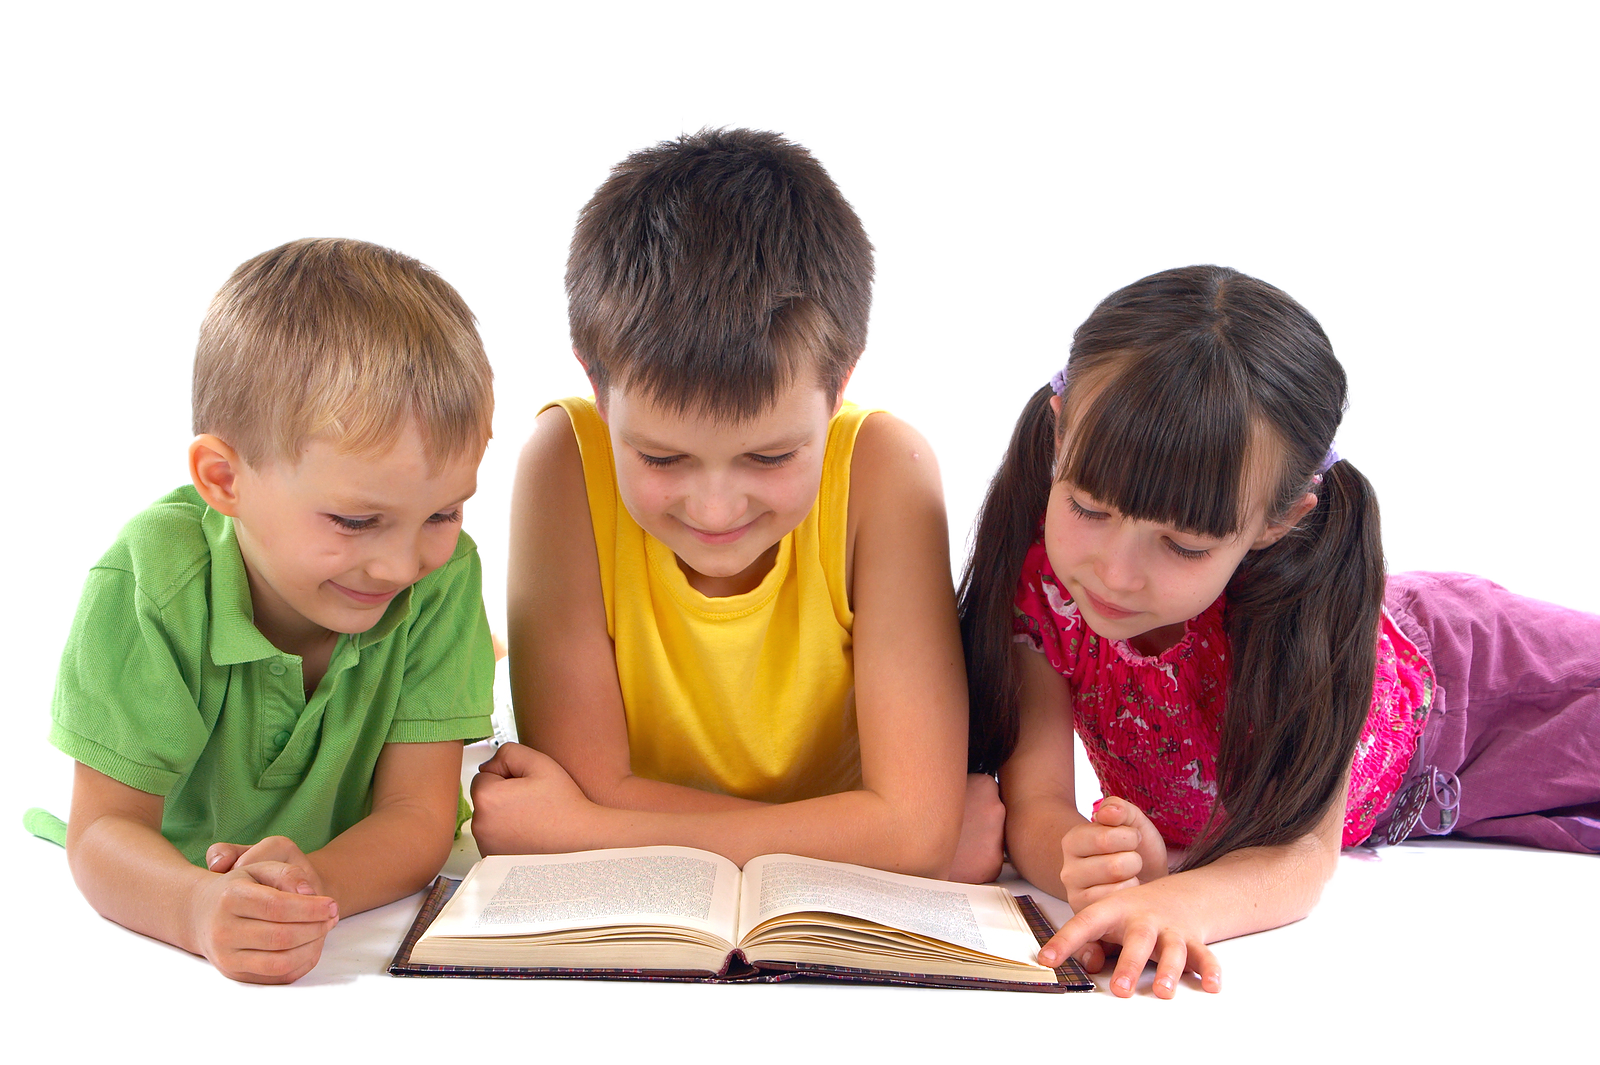 PNG HD Of Kids Reading - 131567